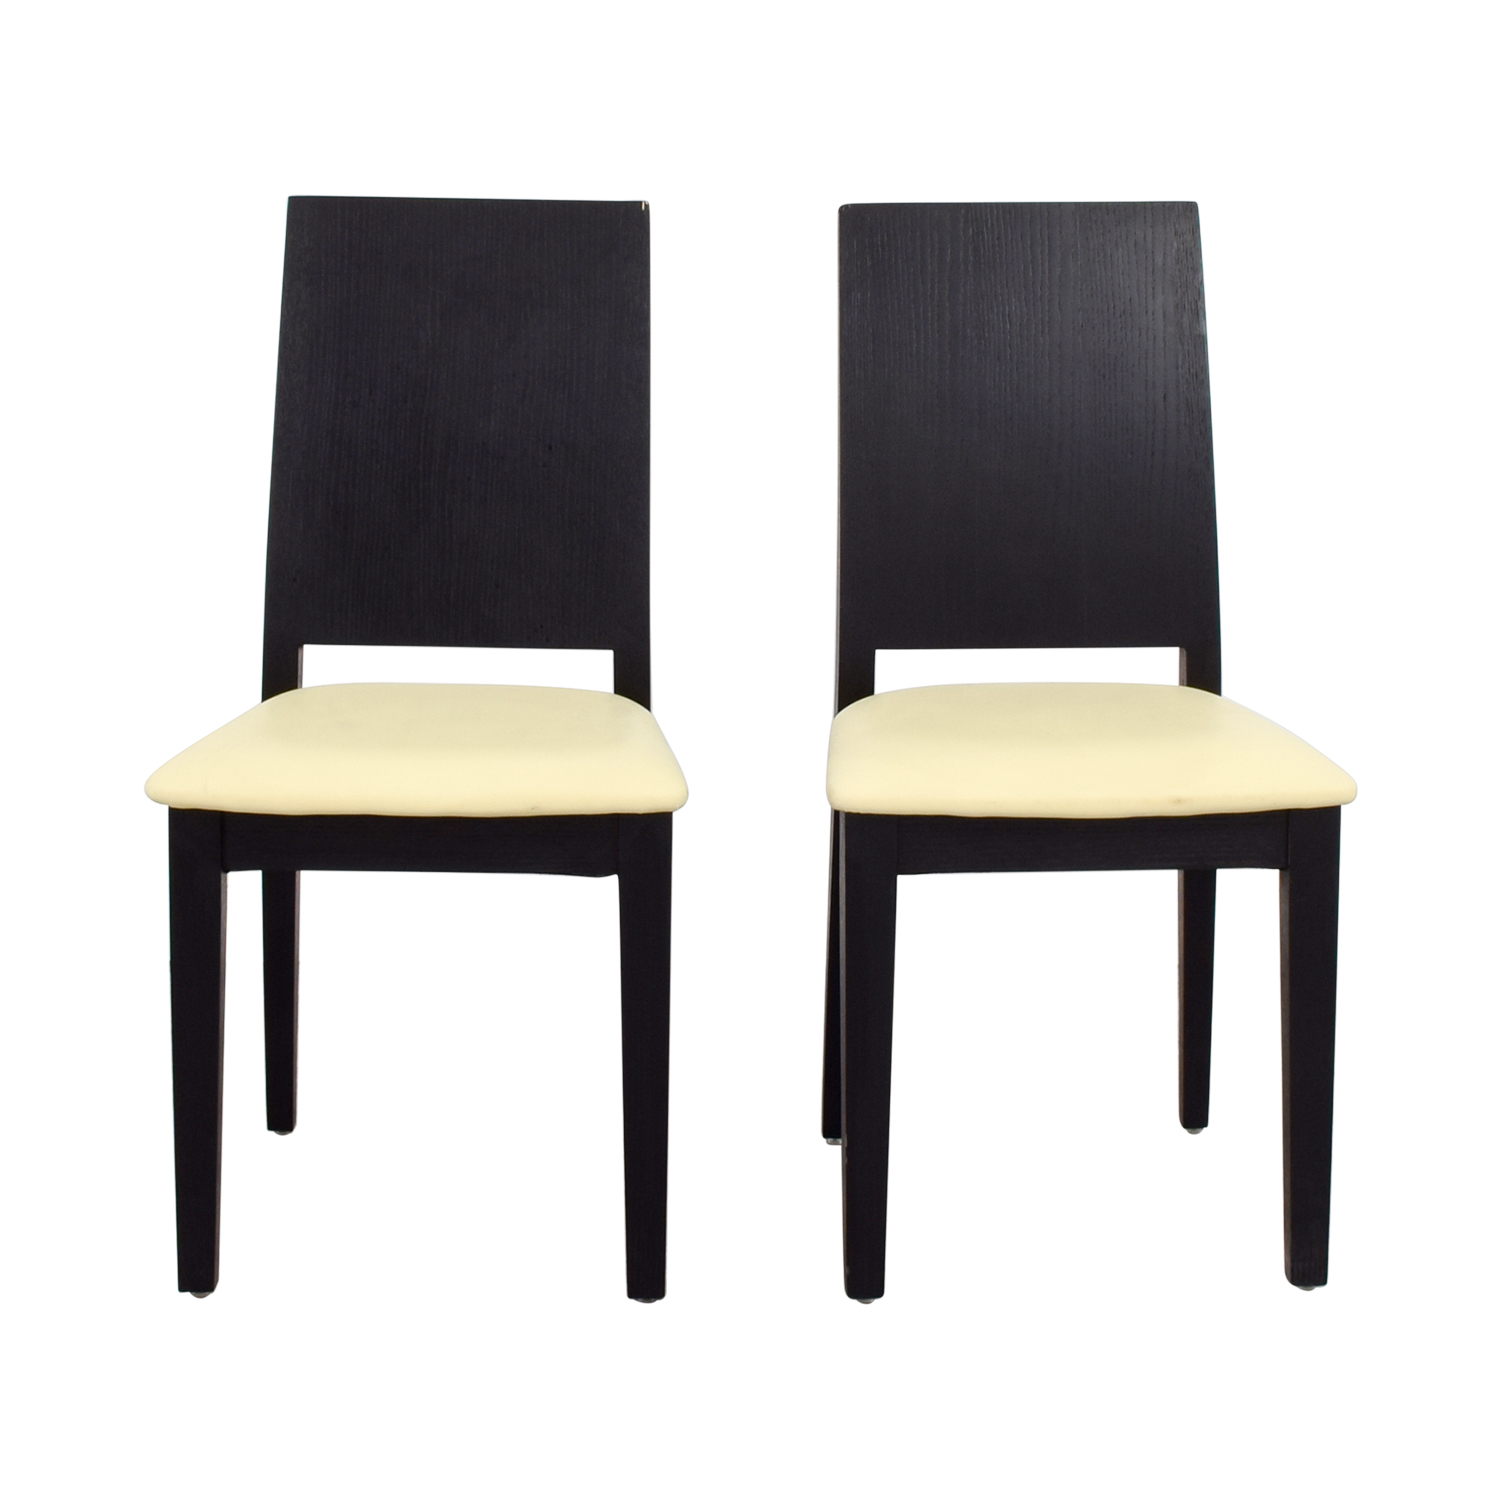 buy Black Frame with White Seat Dining Chairs